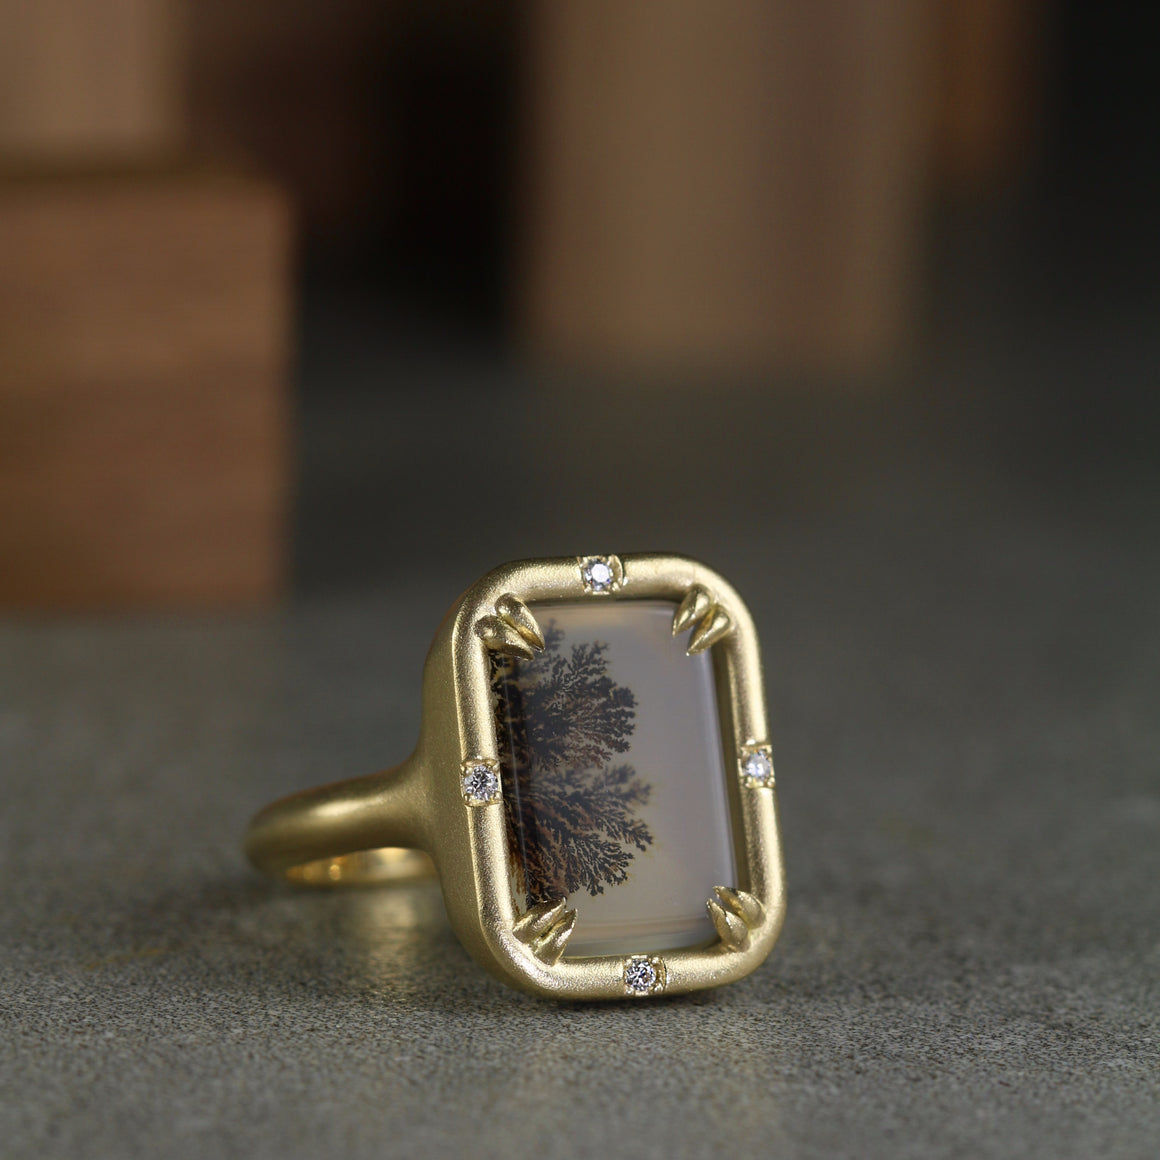 Dendritic Agate Ring with Rectangular Agate in Yellow Gold